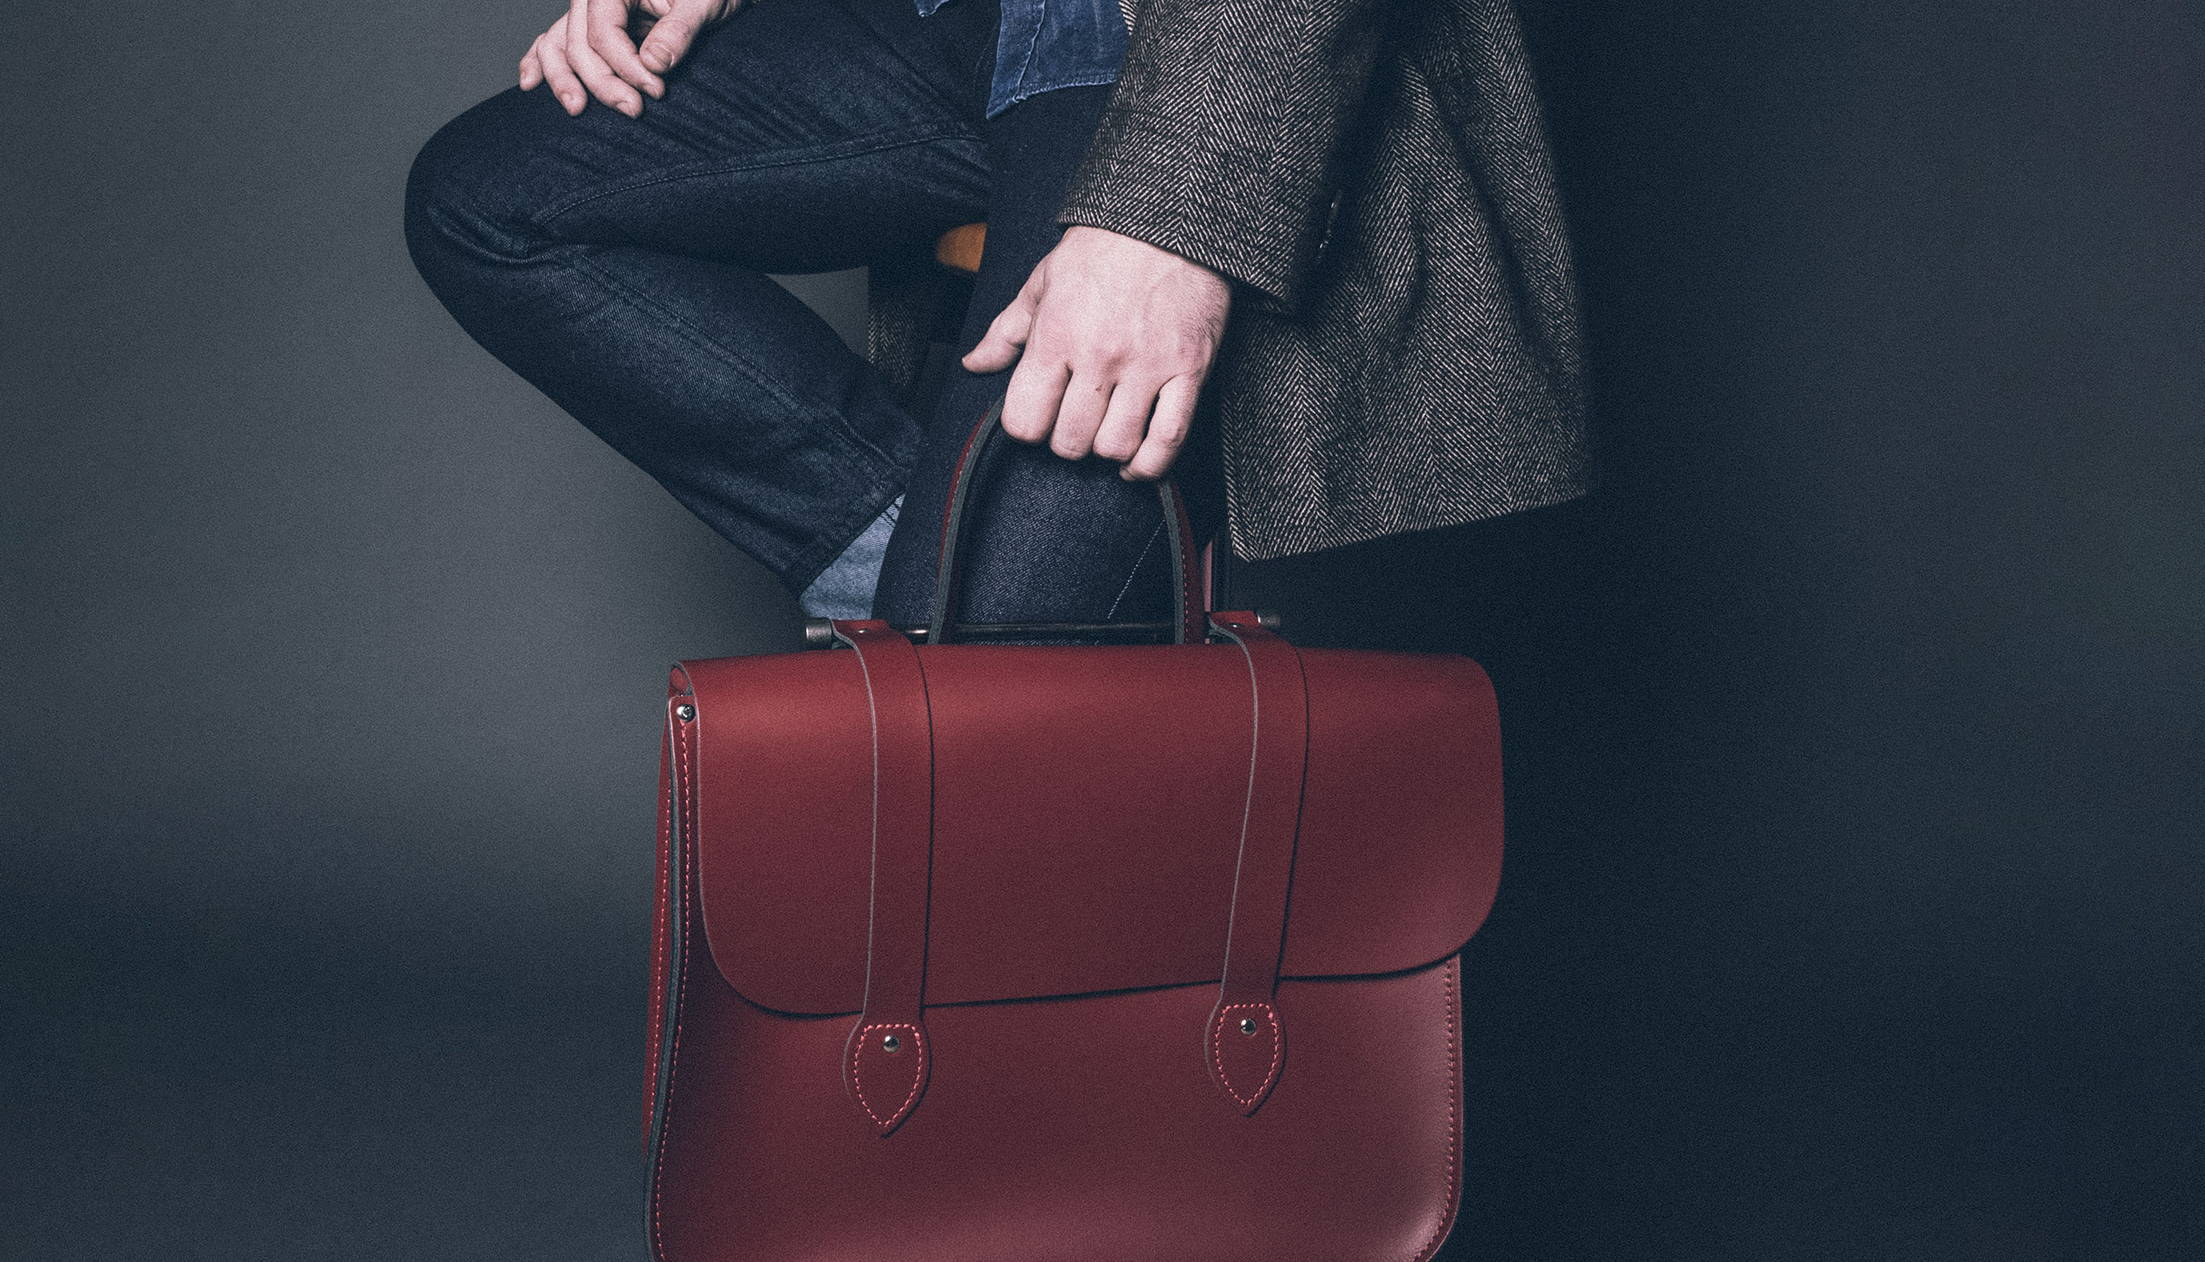 Model Holding a Red Leather Music Bag